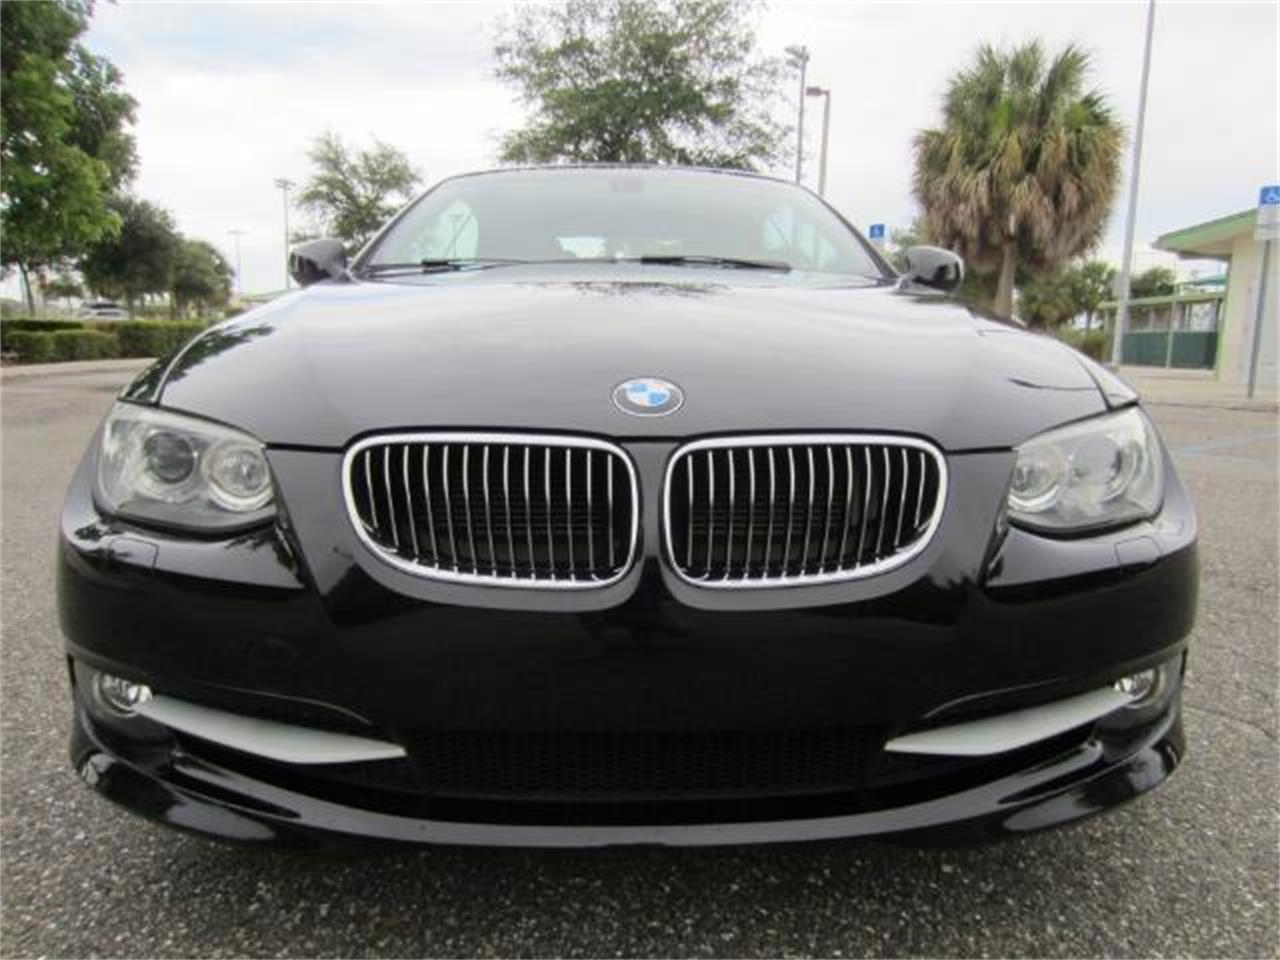 2011 BMW 328i for sale in Delray Beach, FL – photo 16